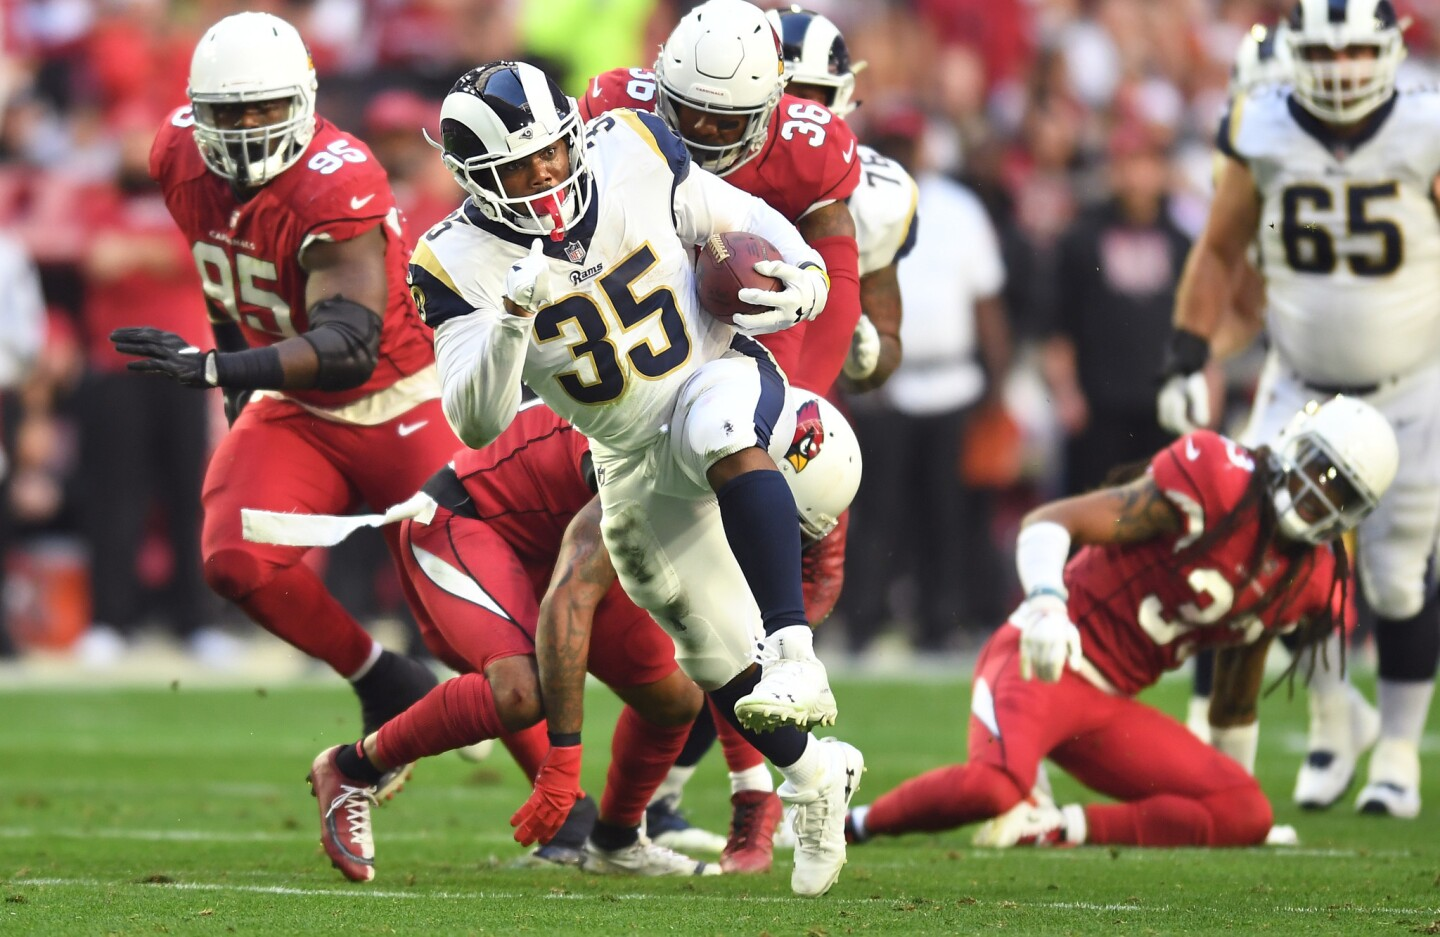 Rams running back C.J. Anderson picks up big yards against the Arizona Cardinals in the second quarter at State Farm Stadium on Sunday in Glendale, Ariz.